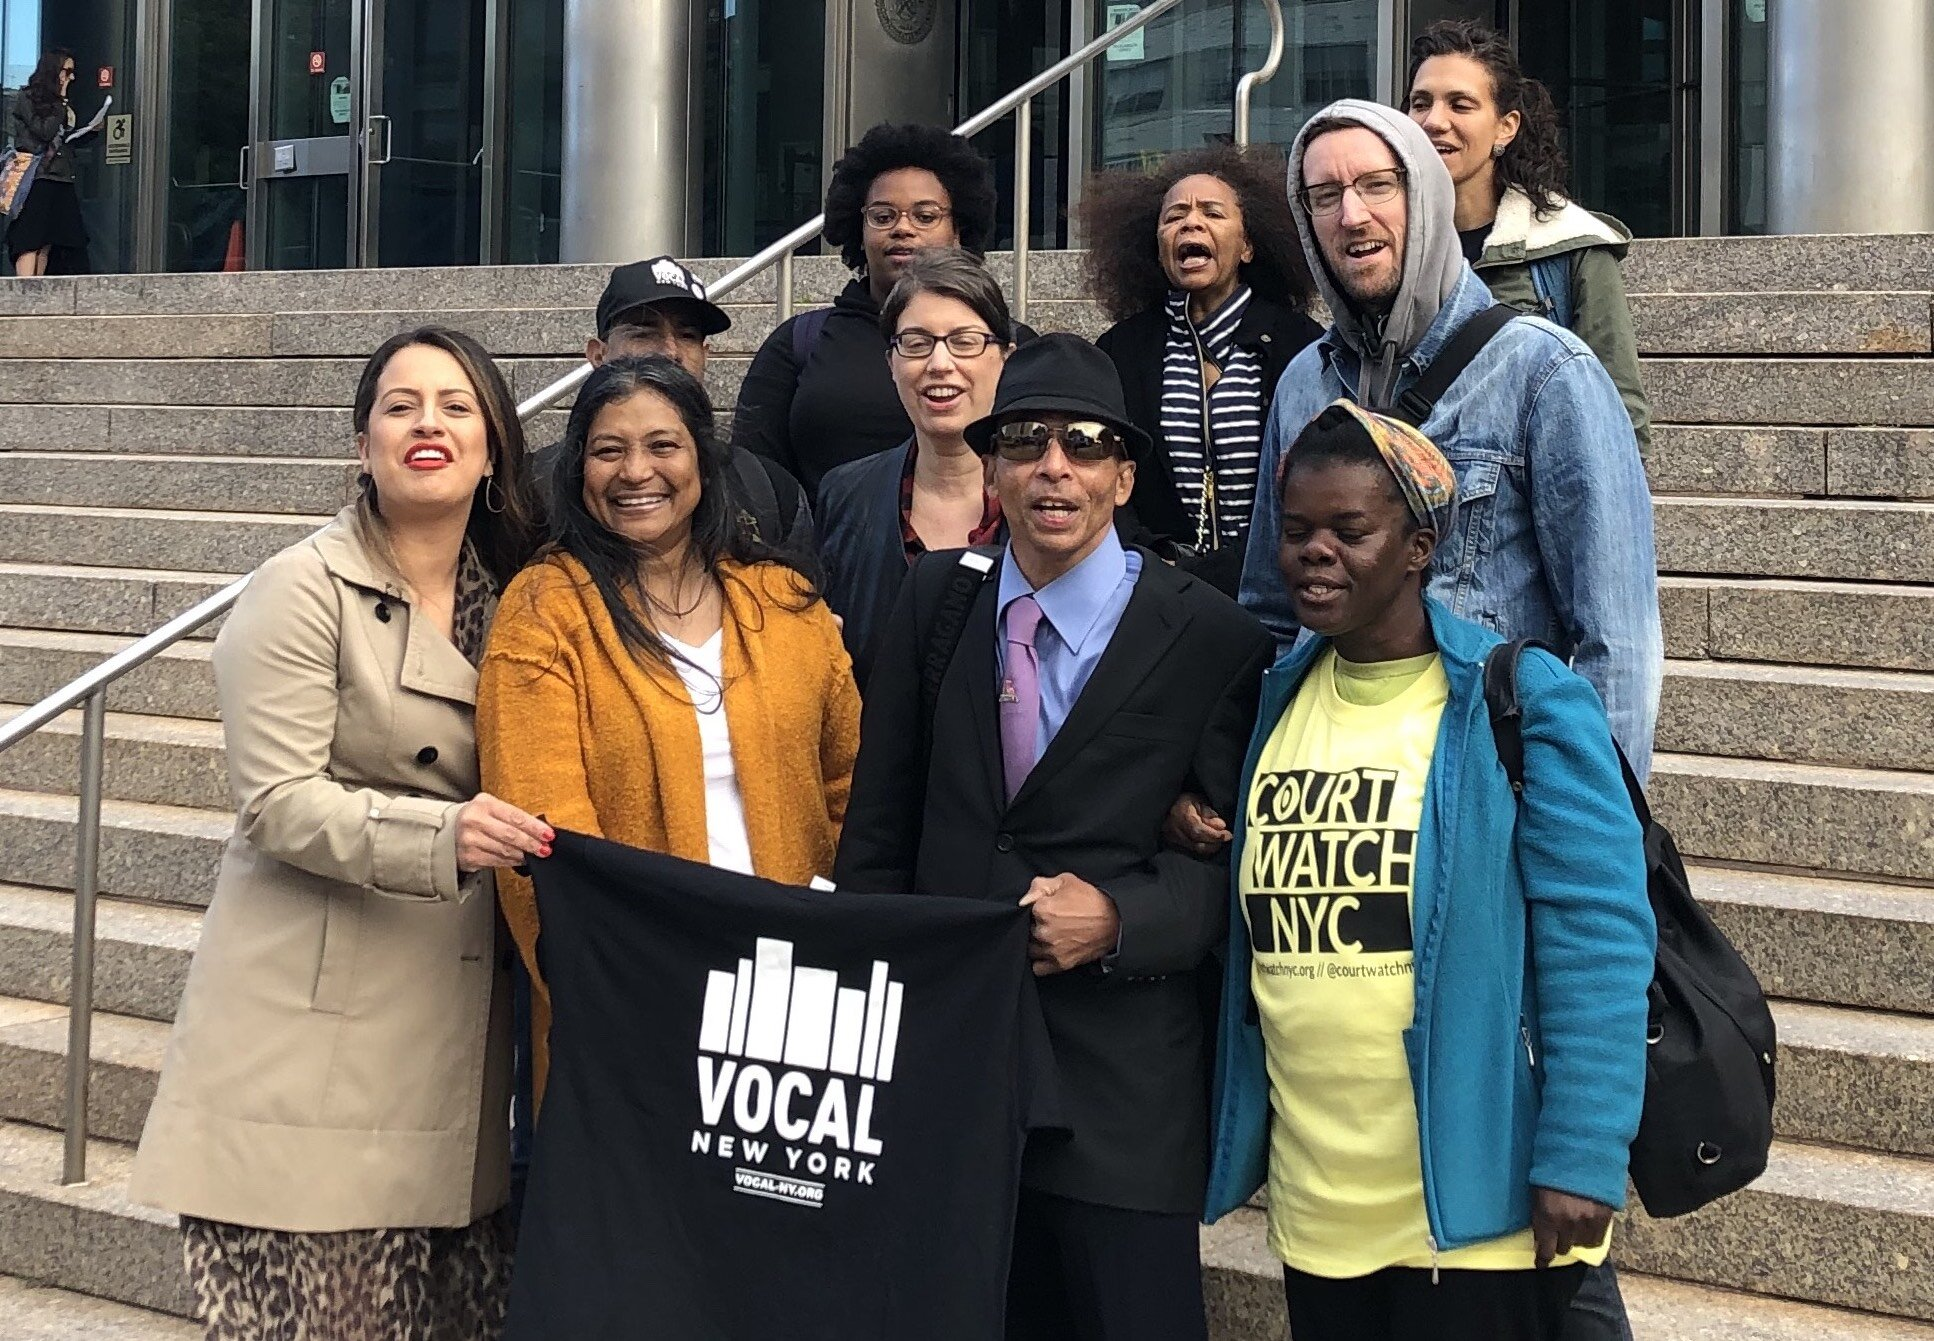 Advocates from Vocal-NY and Assemblymember Catalina Cruz (left) joined Peggy Herrera (second from left) at Queens Criminal Court Oct. 11 for a rally calling on the city to reform approaches to 911 calls for people experiencing emotional disturbances. Photo courtesy of Vocal-NY.